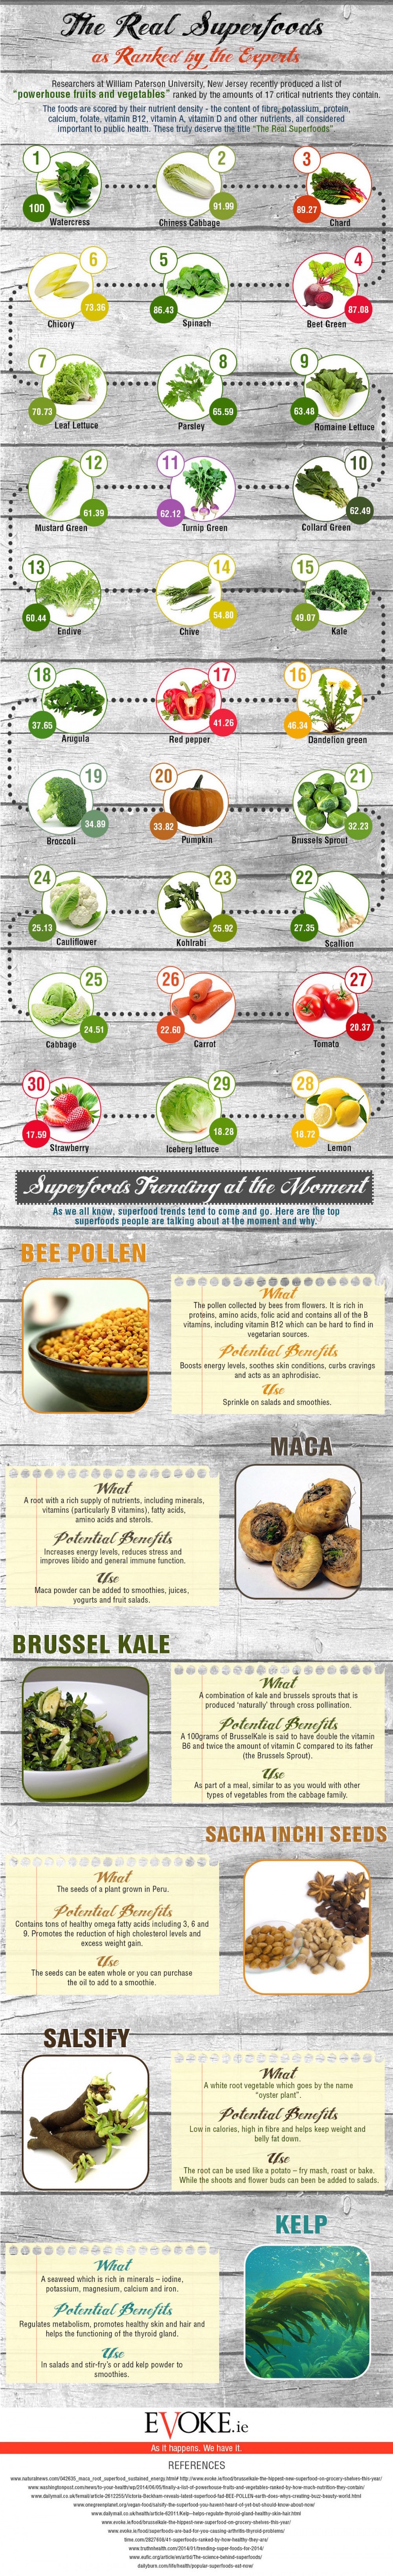 infographic--the-truth-about-superfoods 3